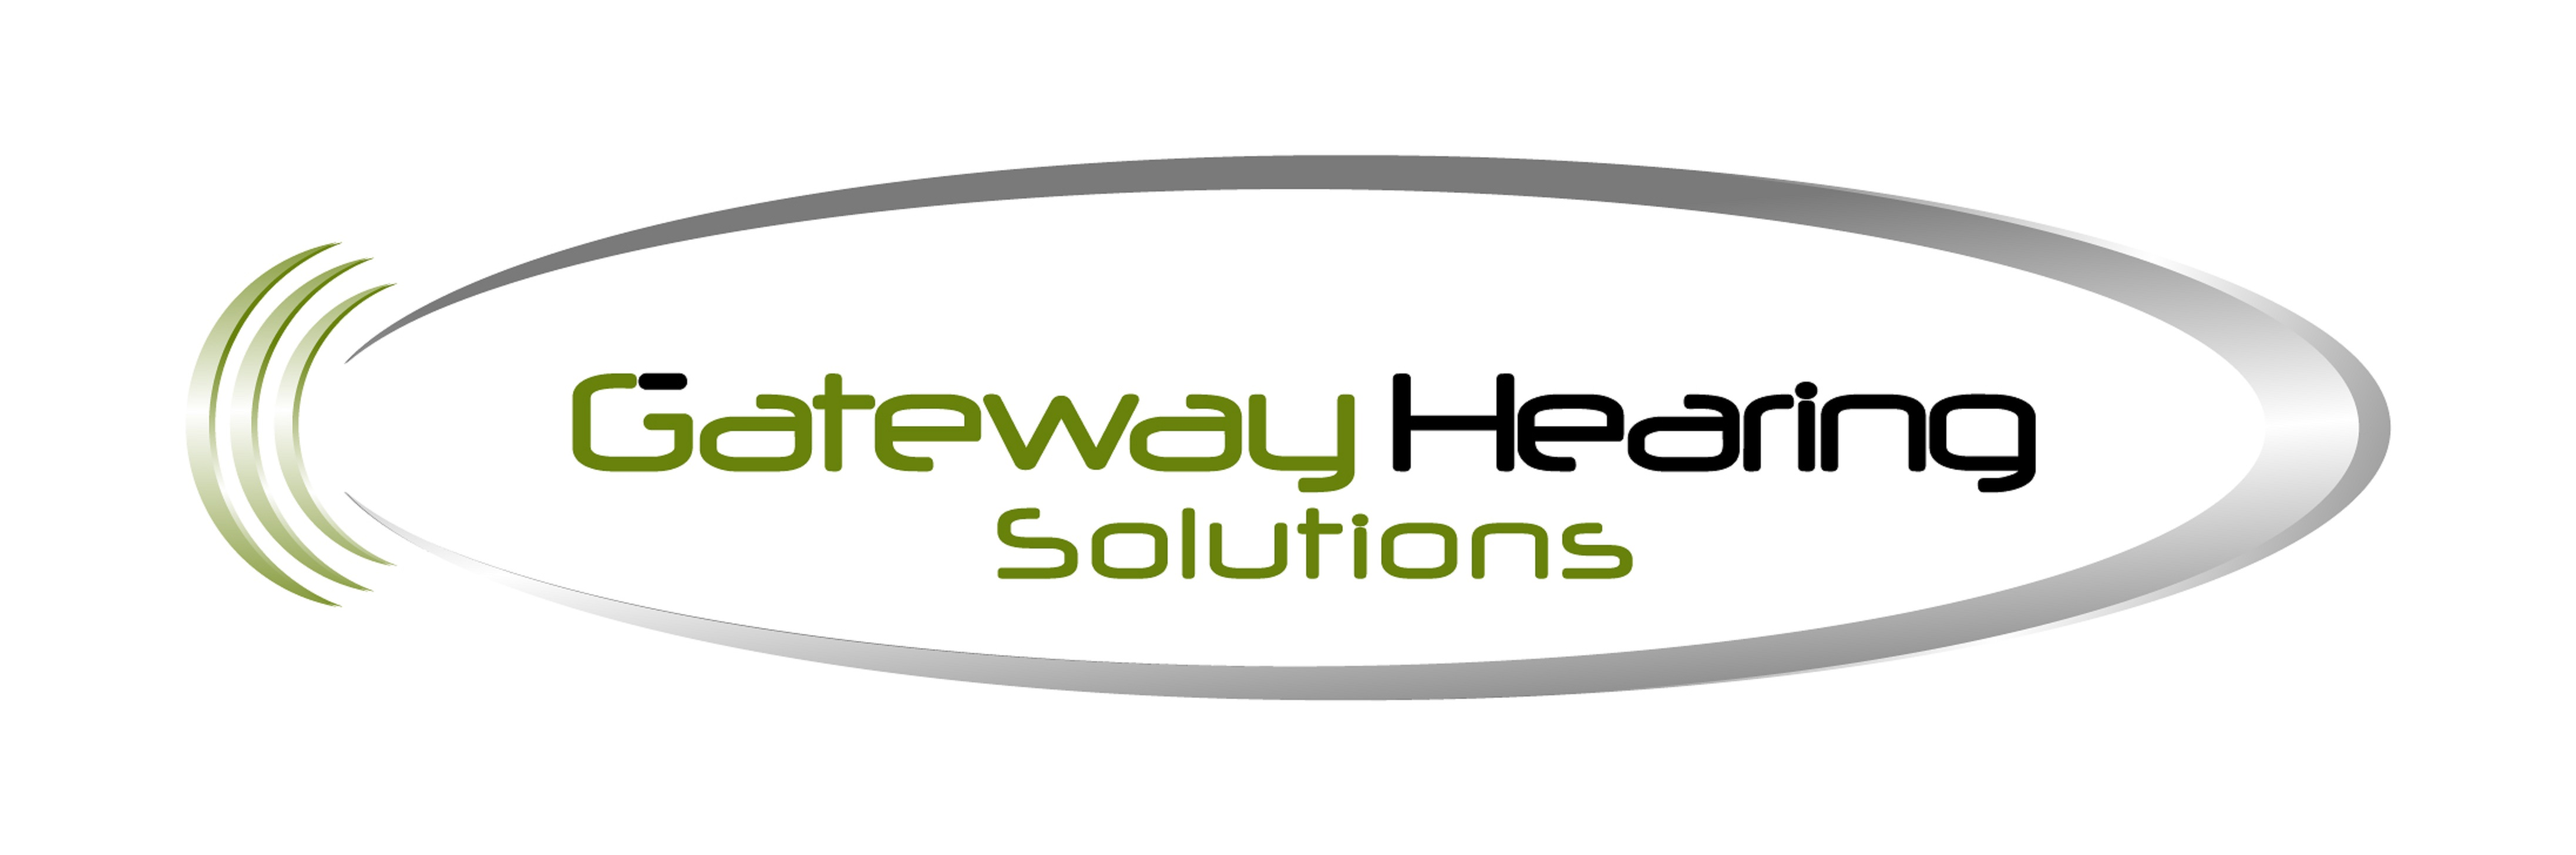 Gateway Hearing Solutions - East Providence logo